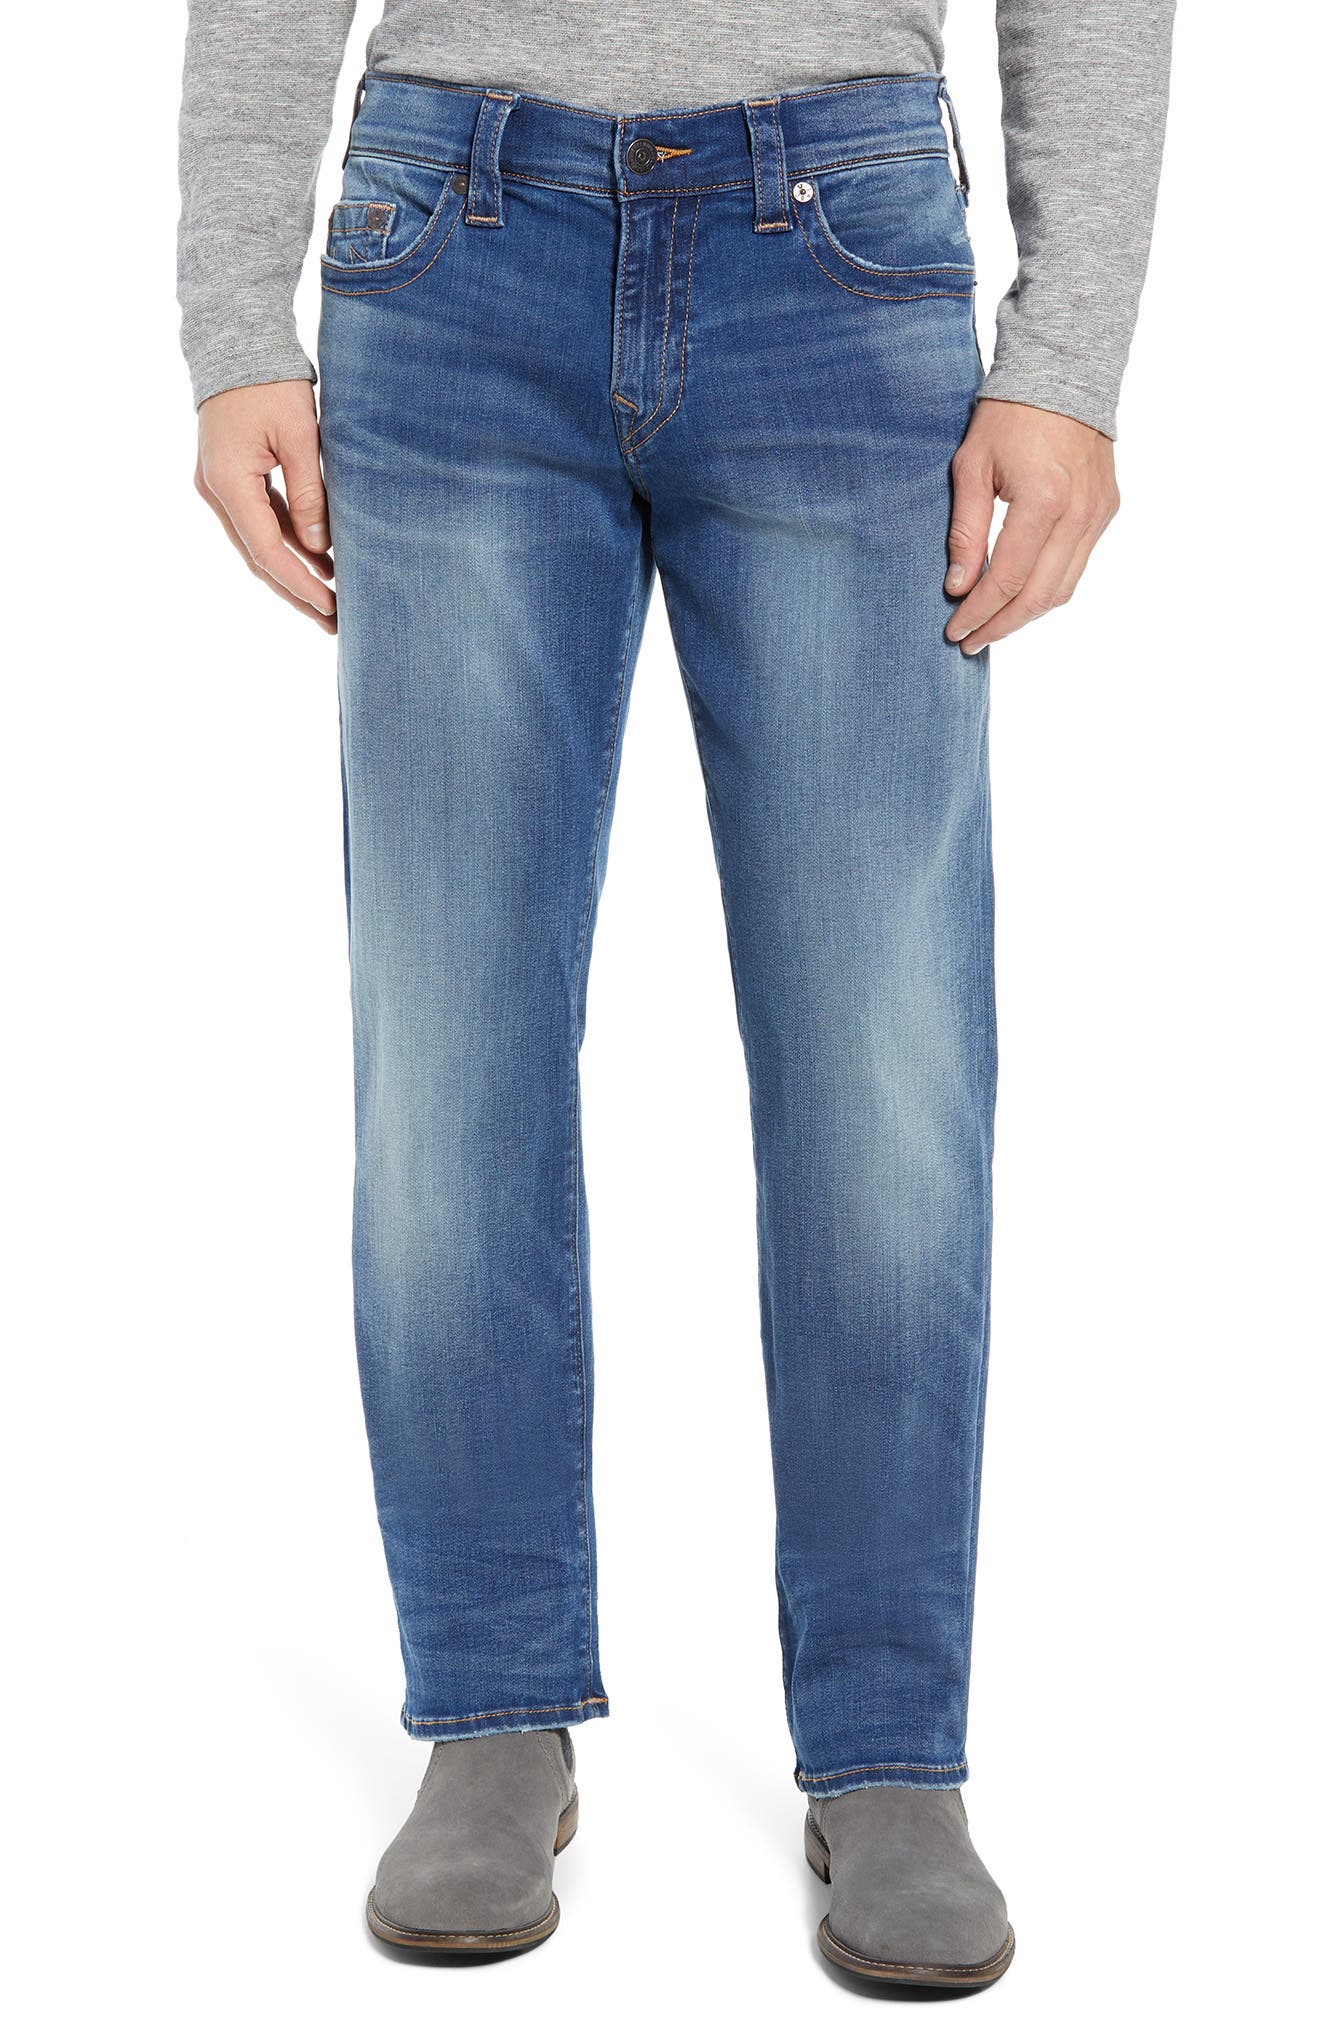 Ricky Relaxed Fit Jeans,                         Main,                         color, SUPERNOVA BLUES